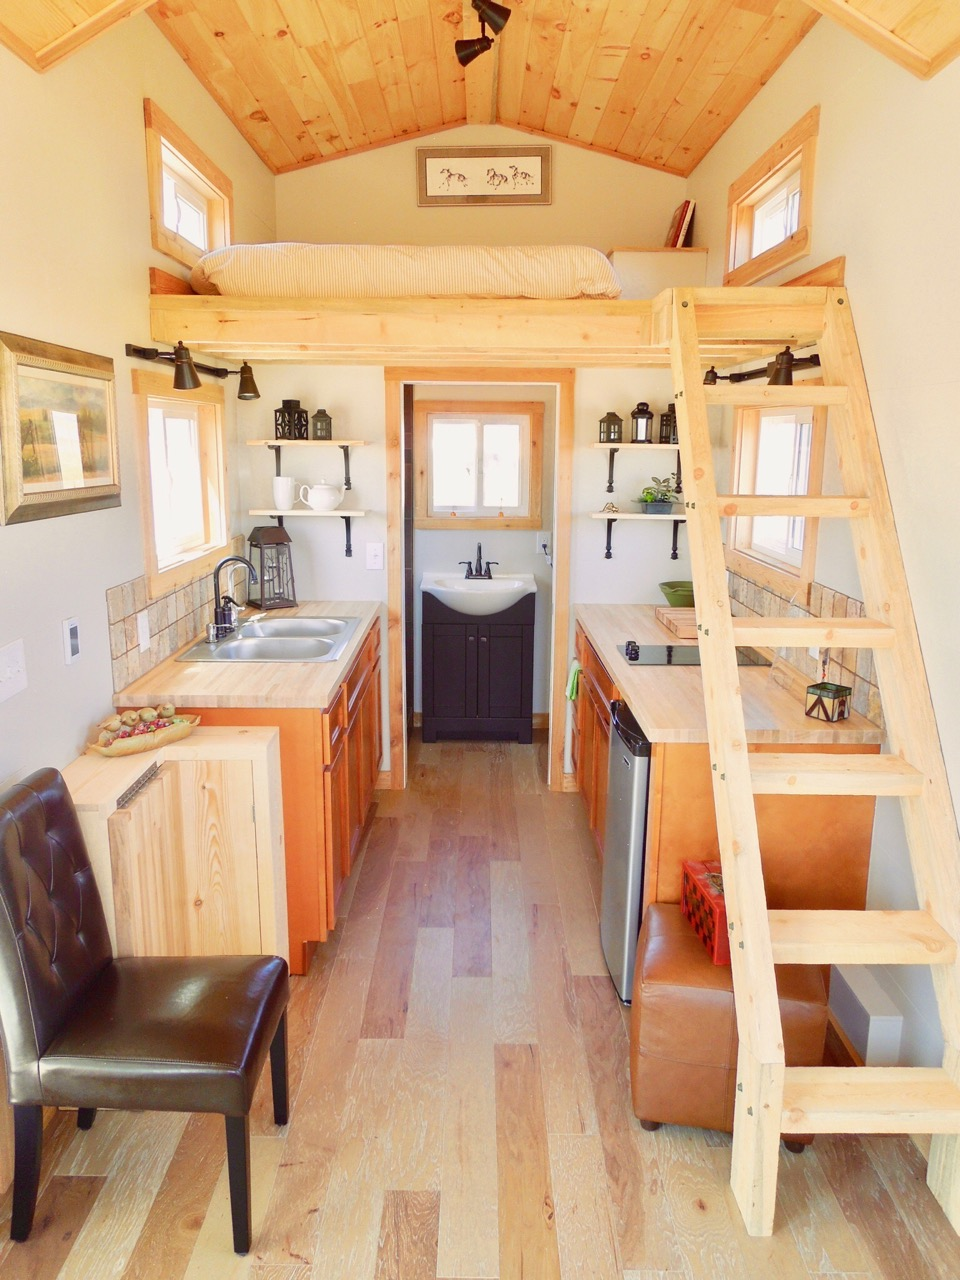 Wheelhouse-tiny-homes-3.jpg